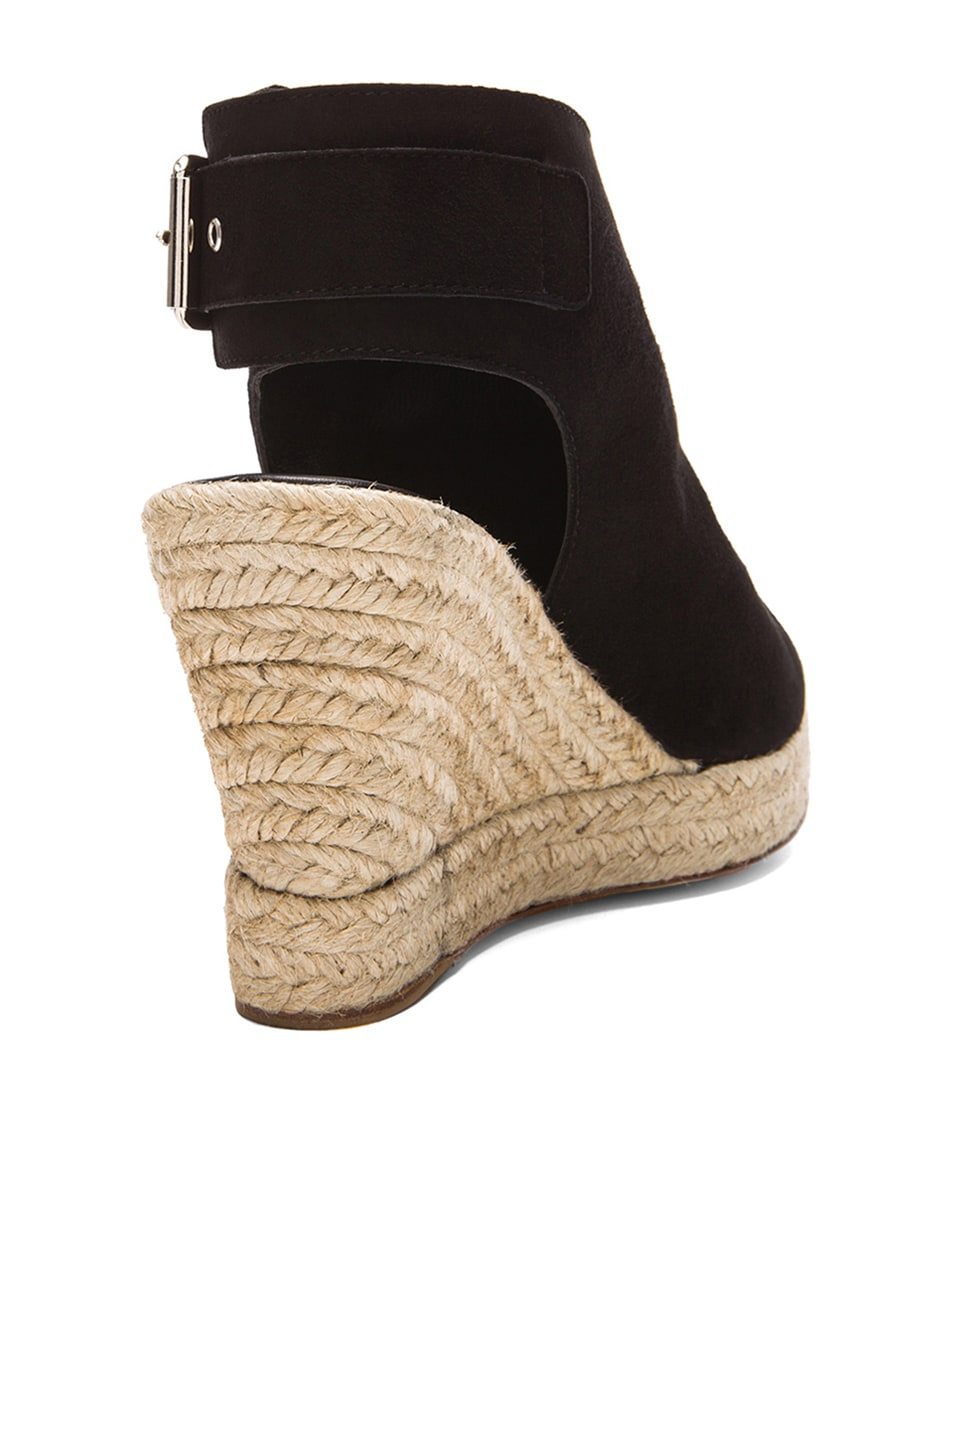 Image 3 of elysewalker los angeles Lesley Suede Wedges in Black